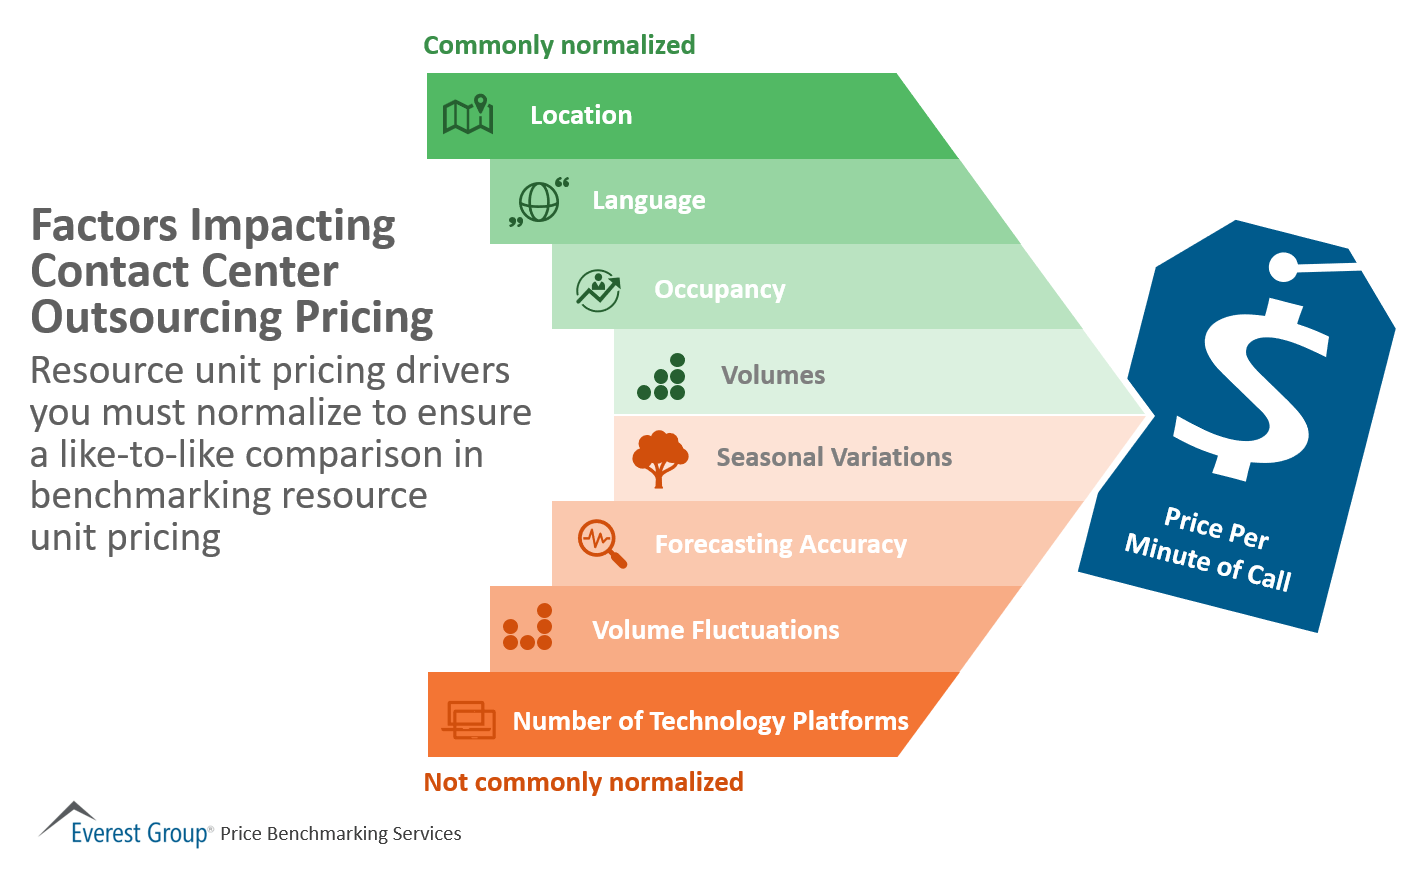 Factors Impacting CCO Pricing